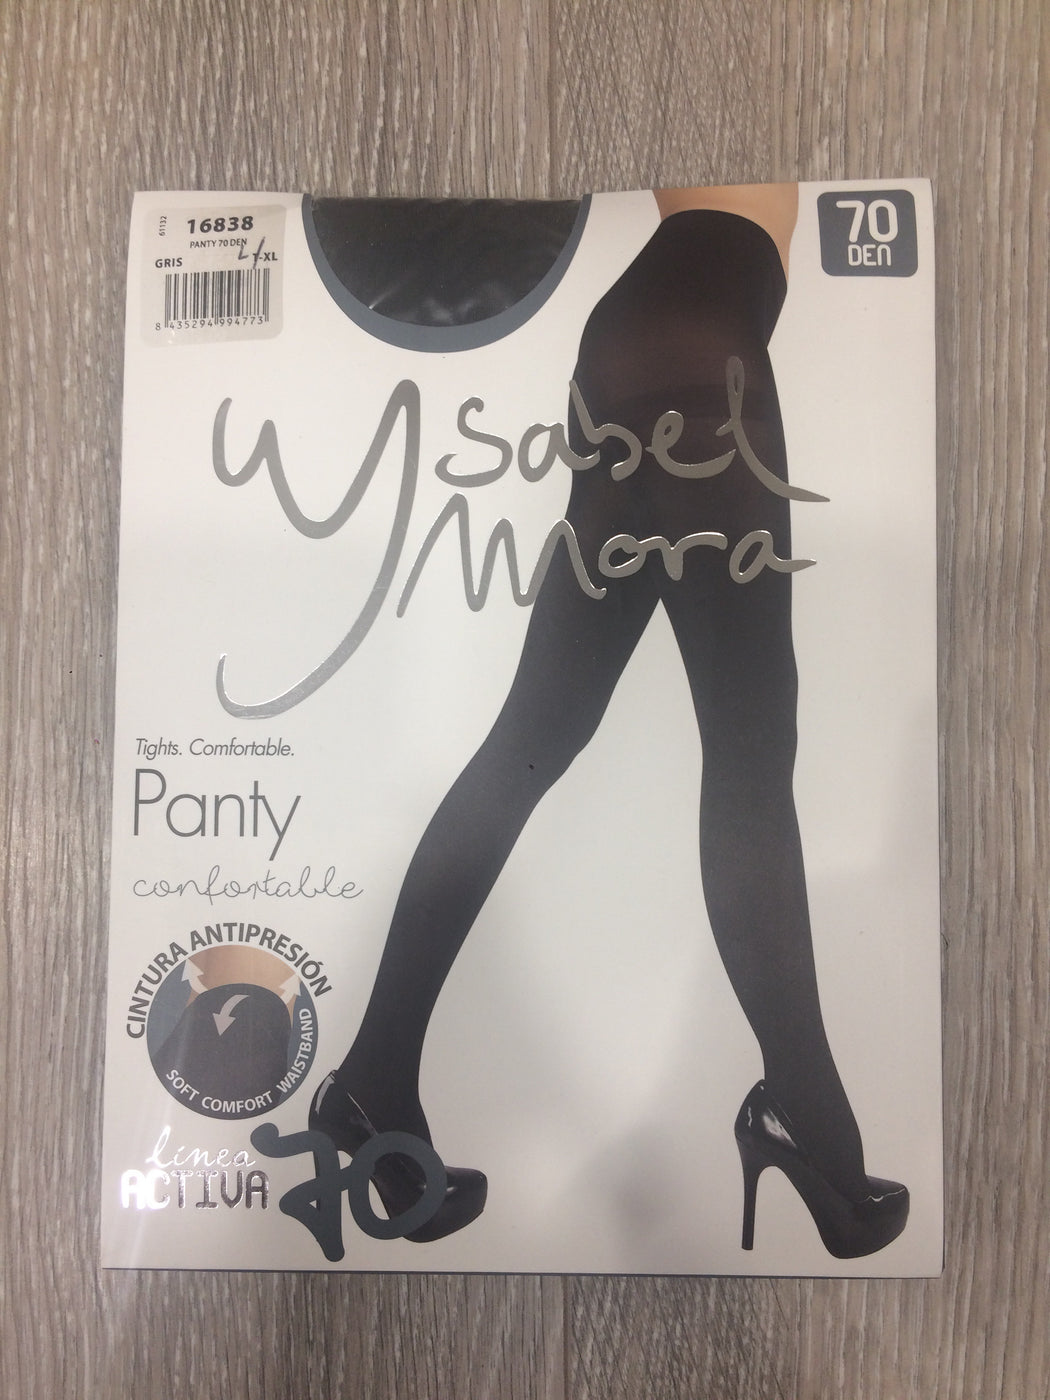 70 DEN soft tights in grey